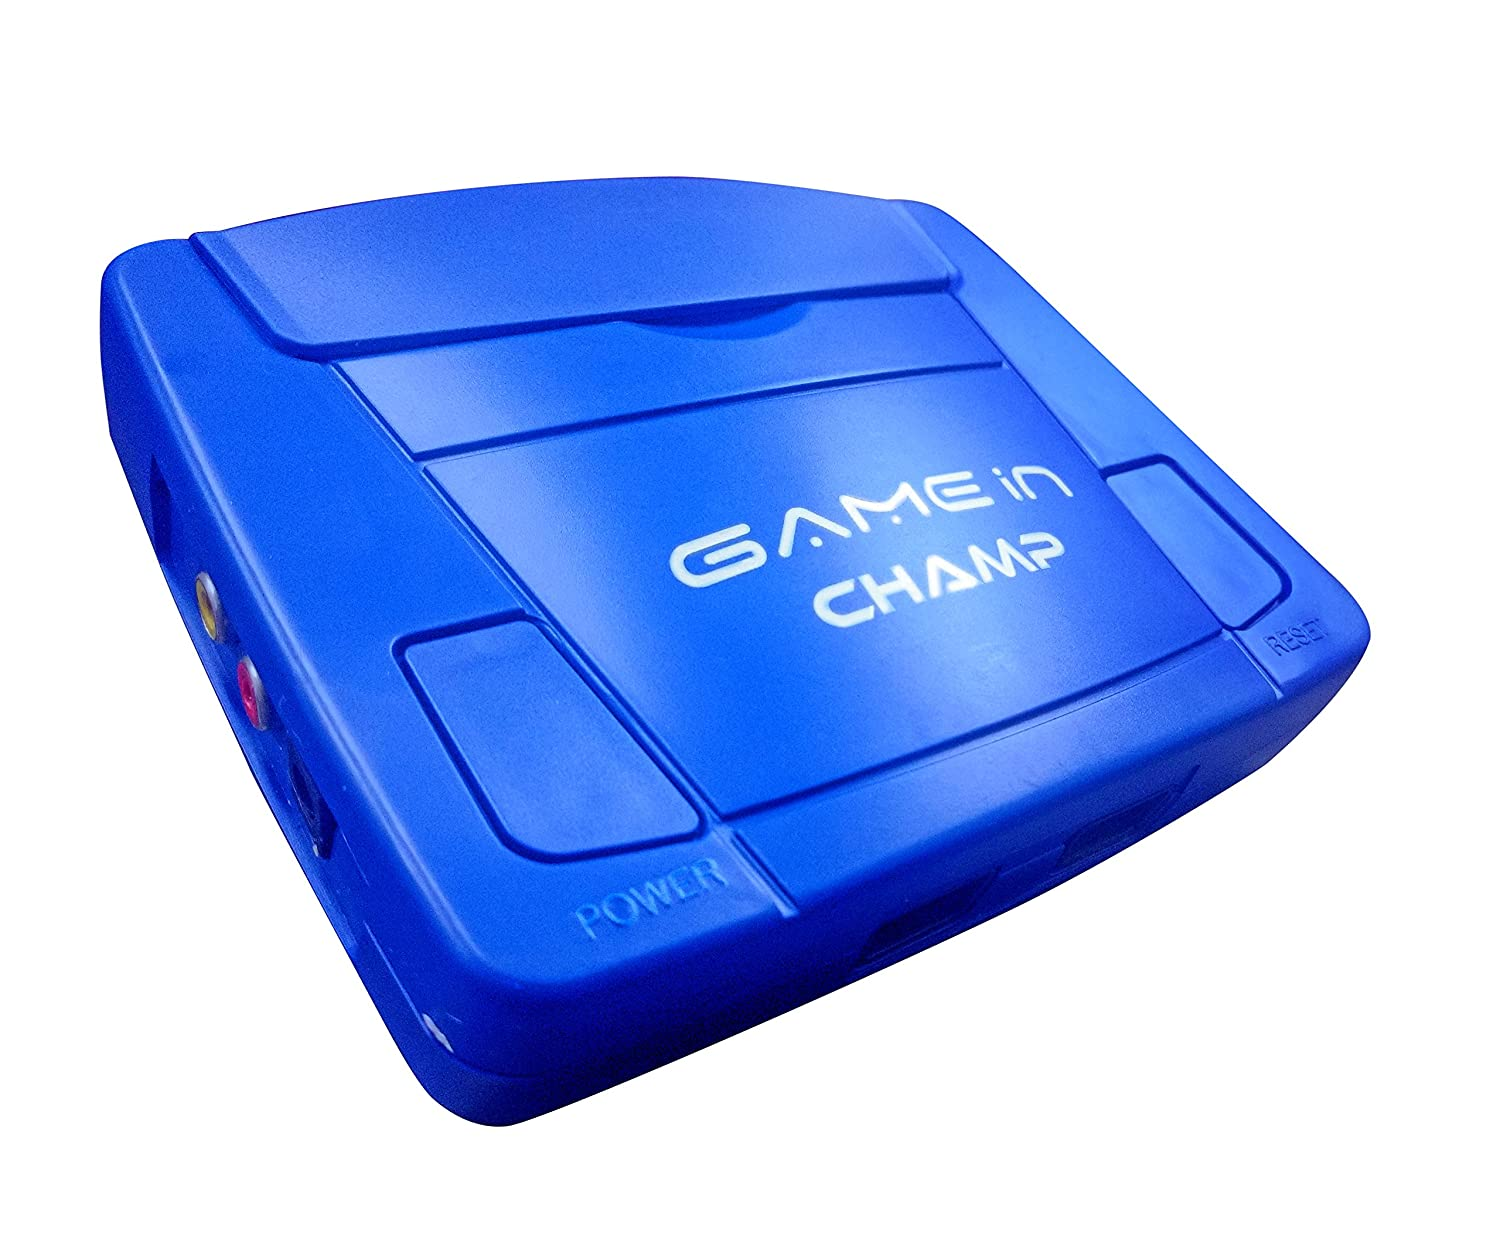 Deals on Mitashi Game In Champ Gaming Console (Blue)